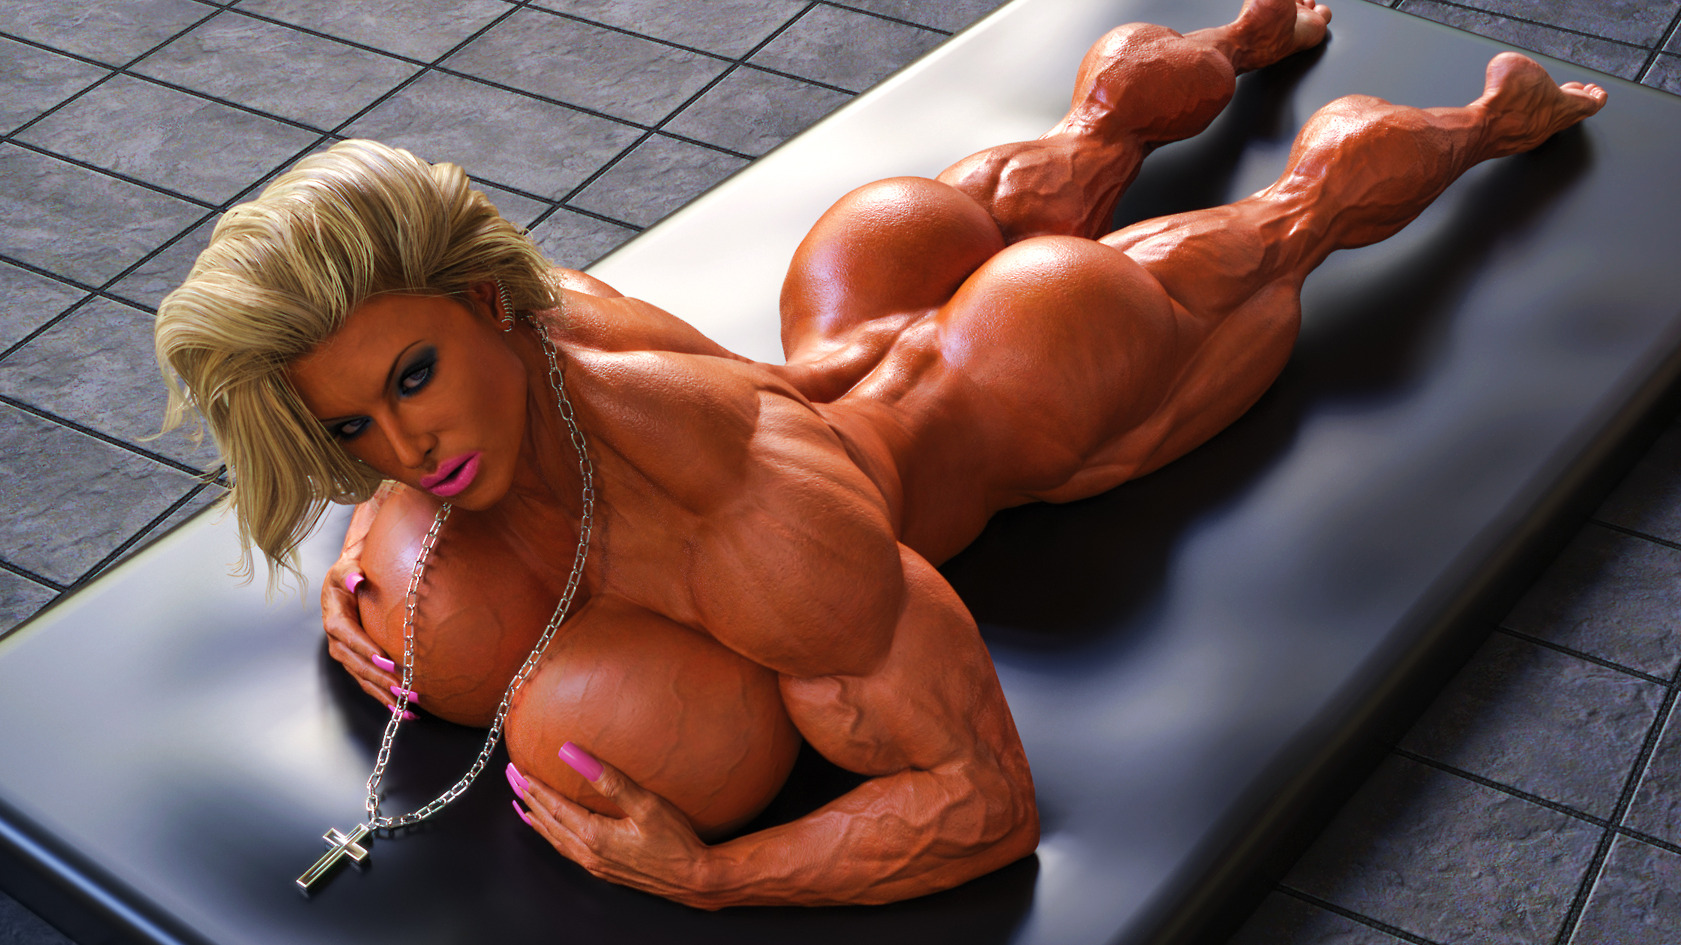 3d sex woman art big bodybuilding fucked photo